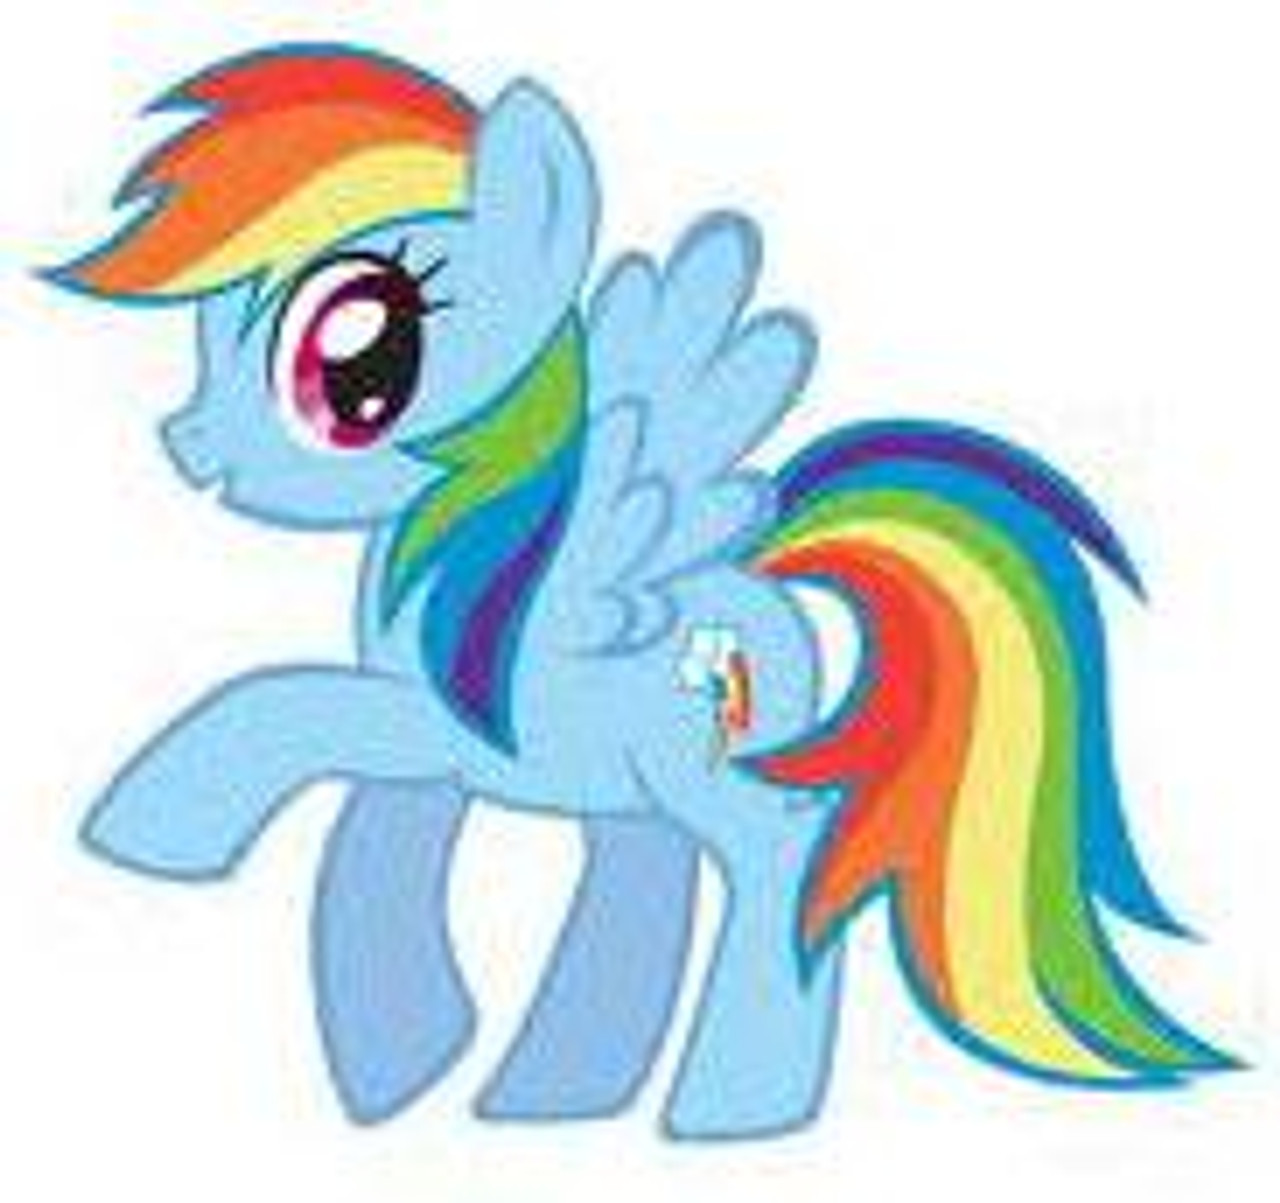 My Little Pony Friendship is Magic 5 Inch Rainbow Dash Plush